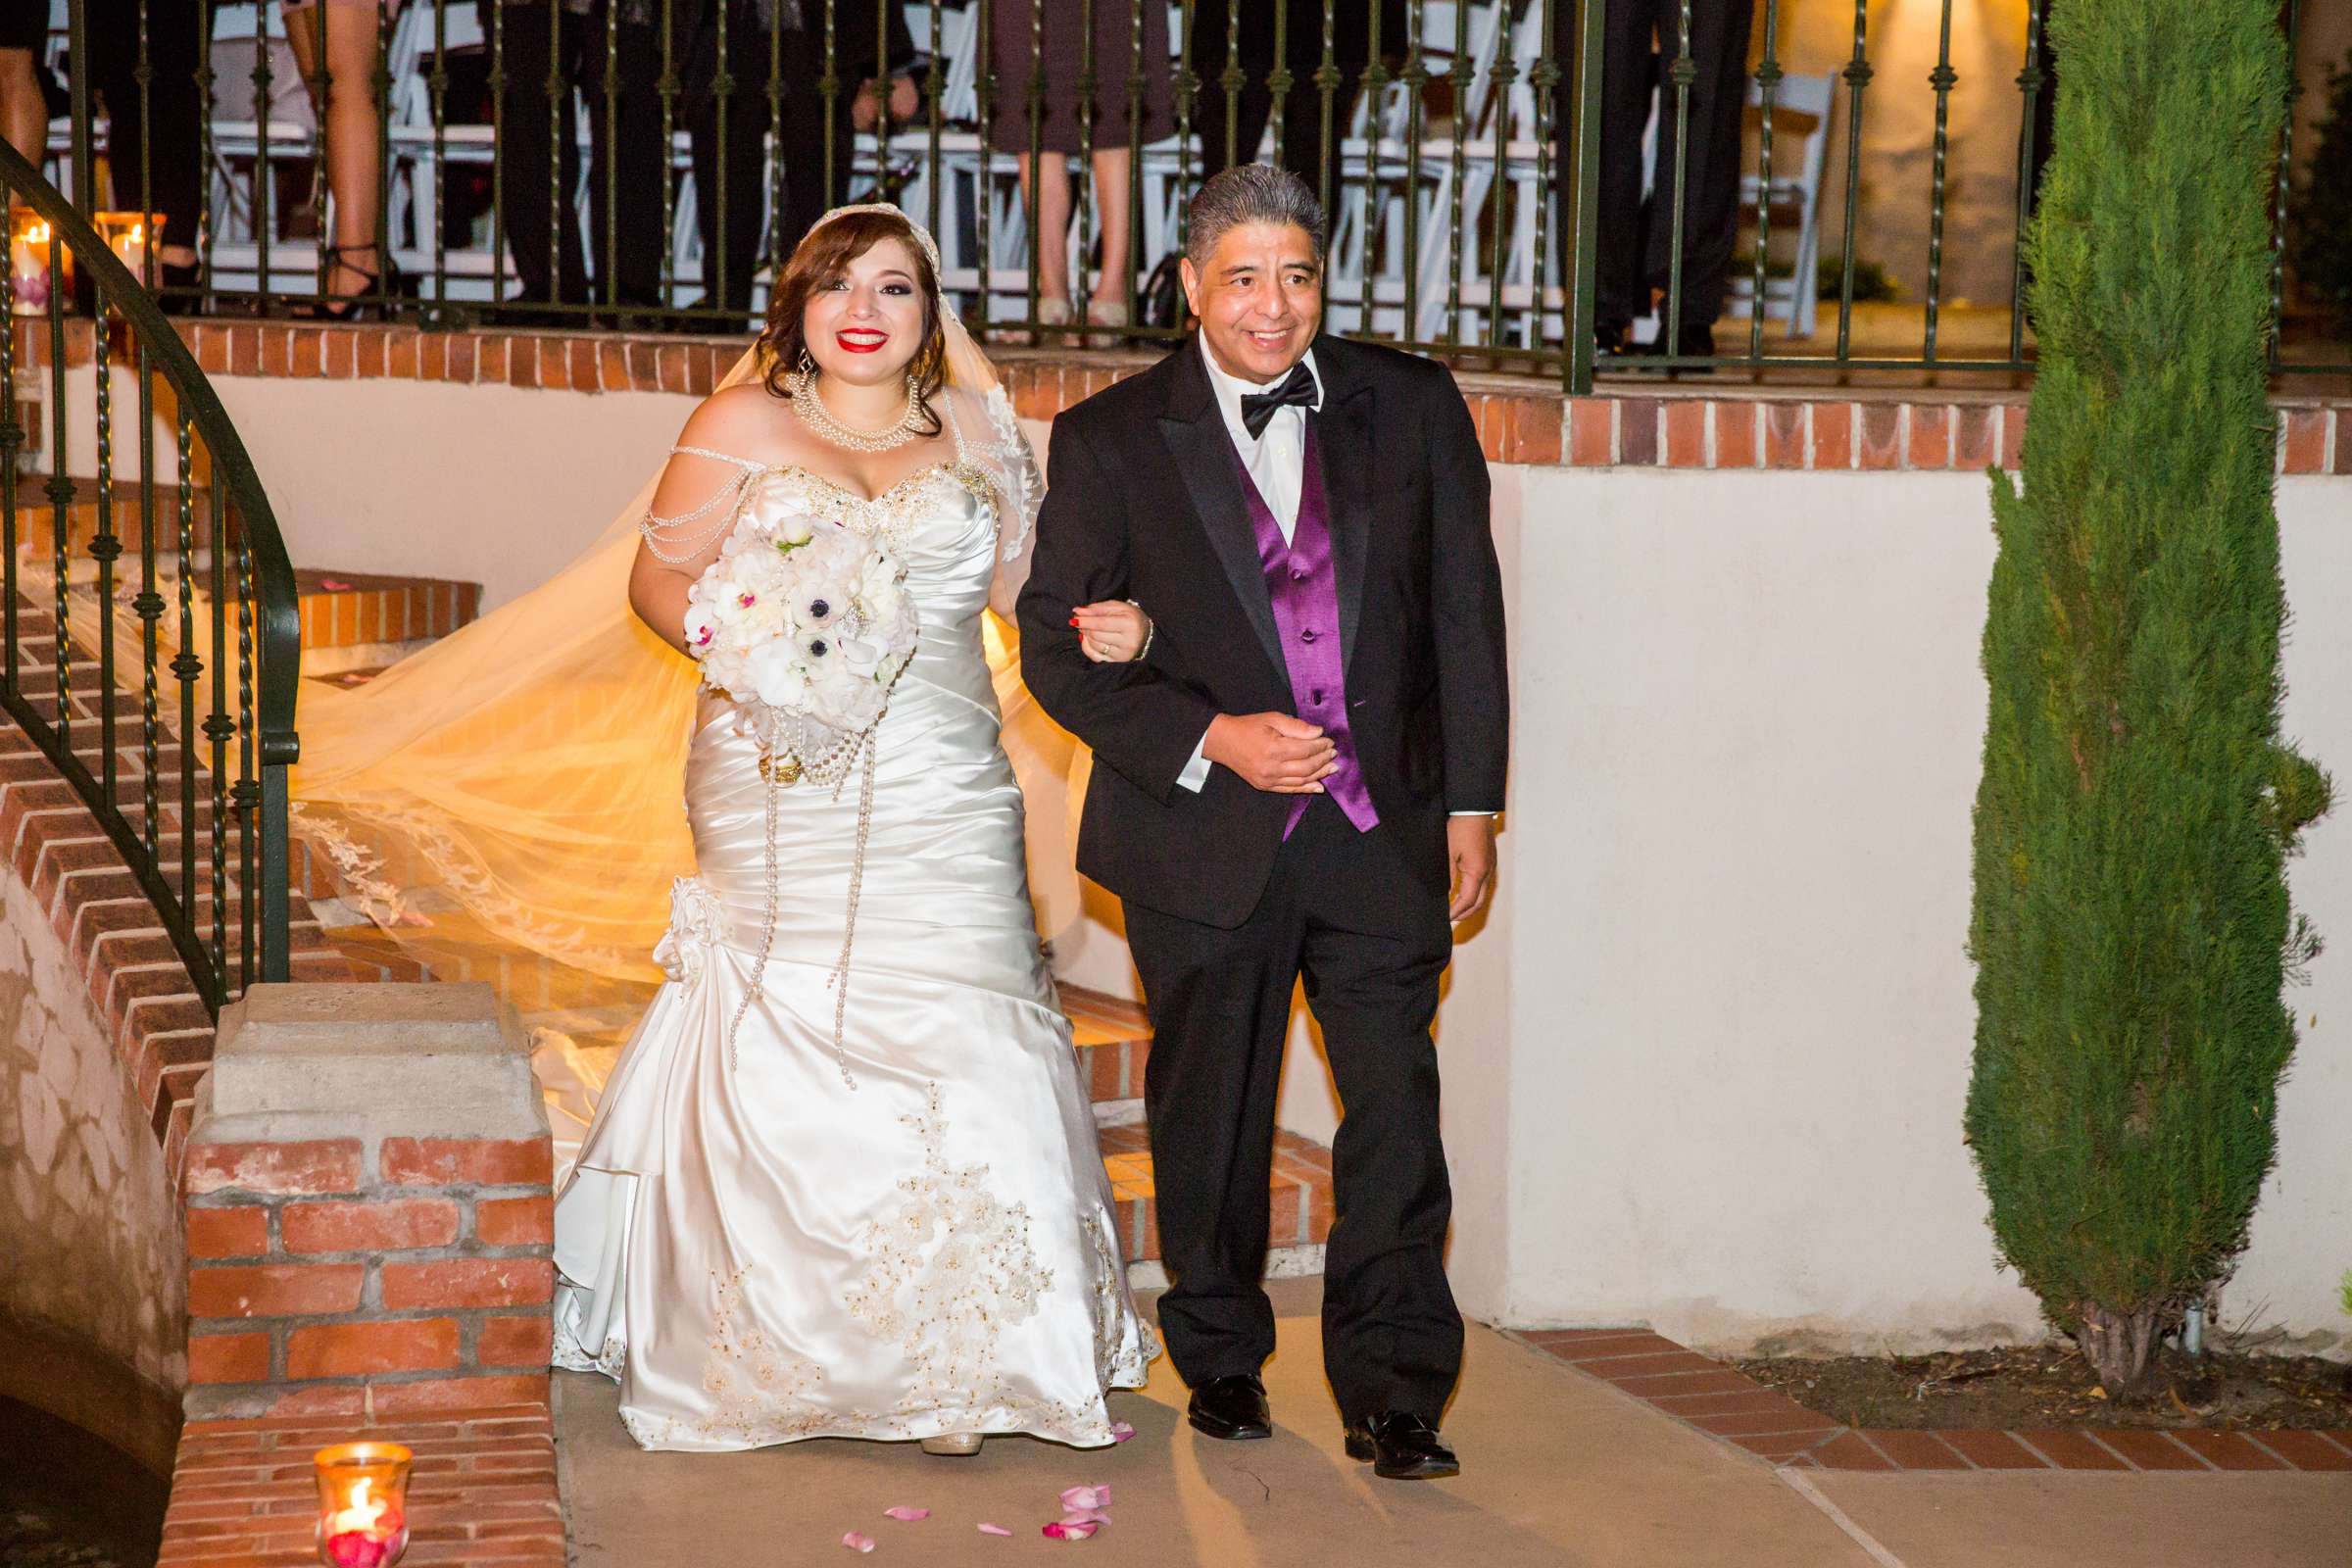 The Prado Wedding coordinated by Breezy Day Weddings, Aalis and Michael Wedding Photo #94 by True Photography